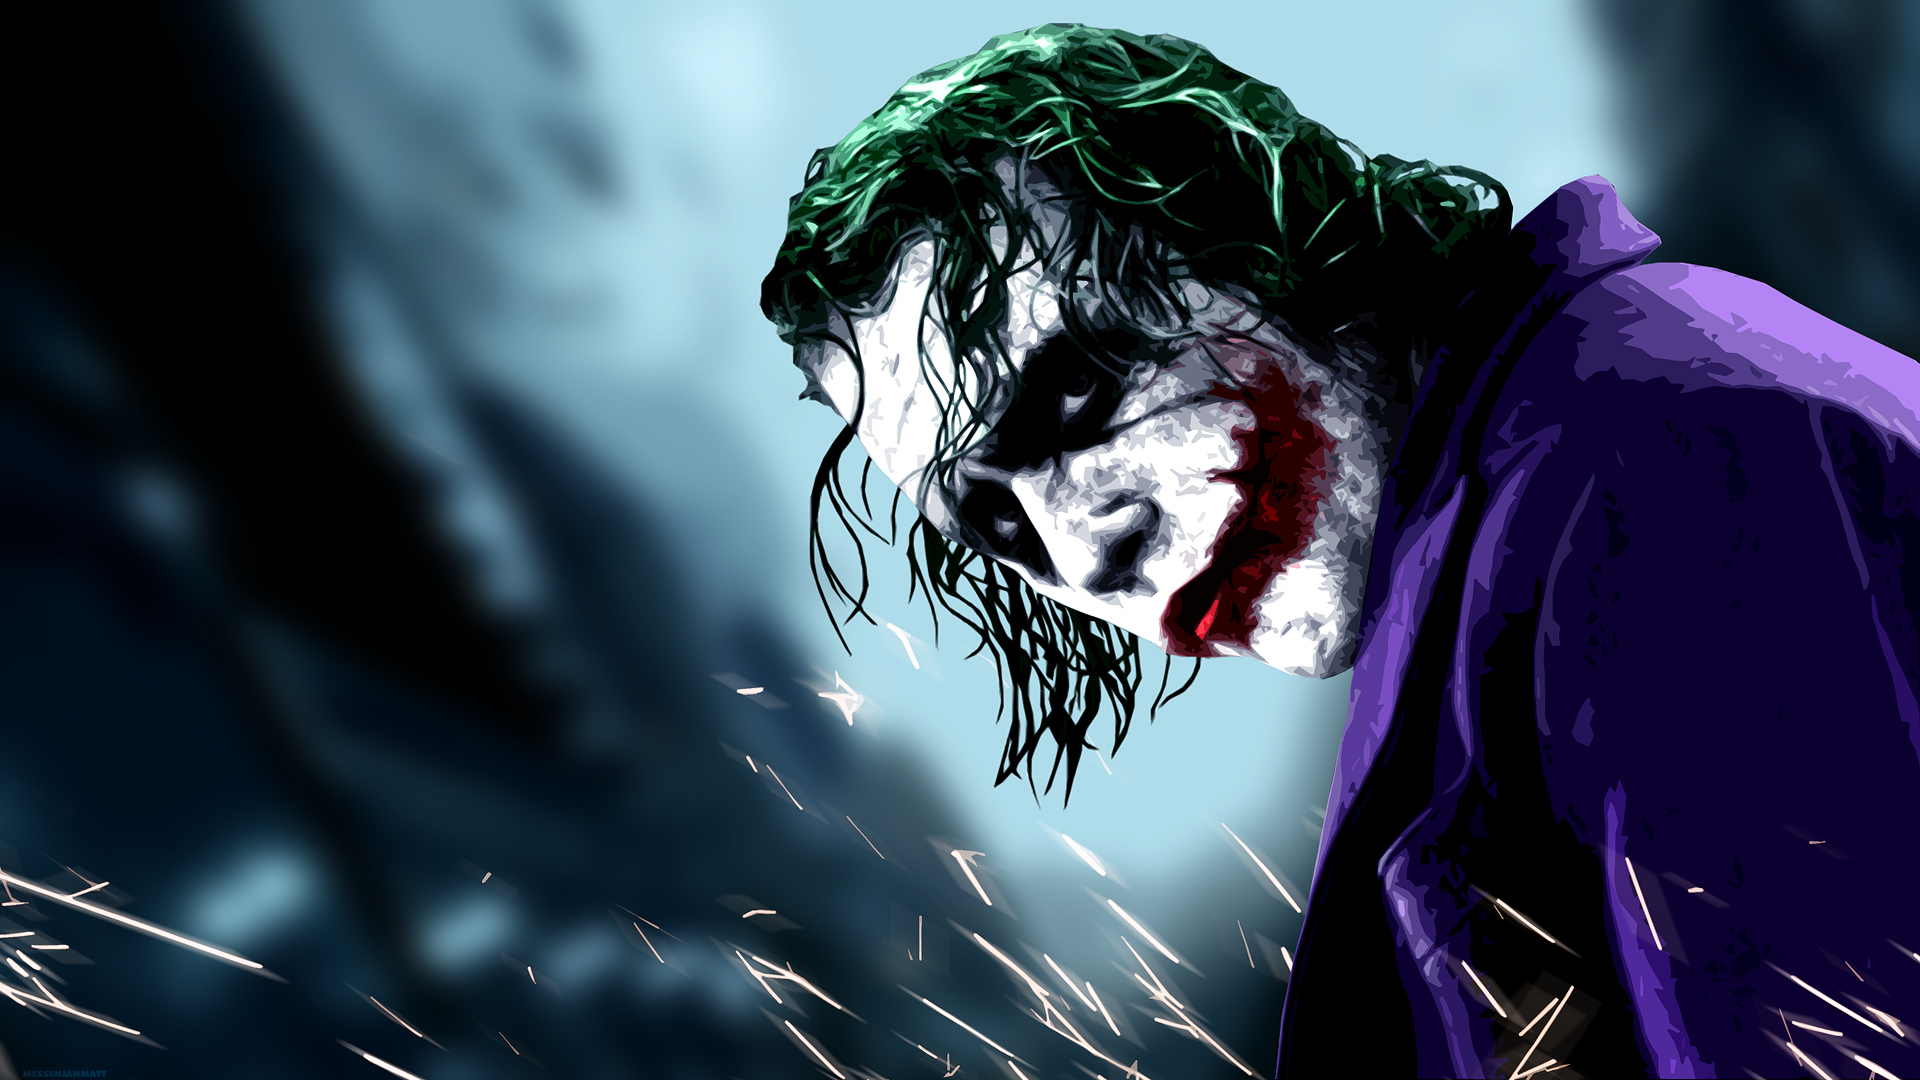 image - joker hd wallpaper joker pictures cool wallpapers